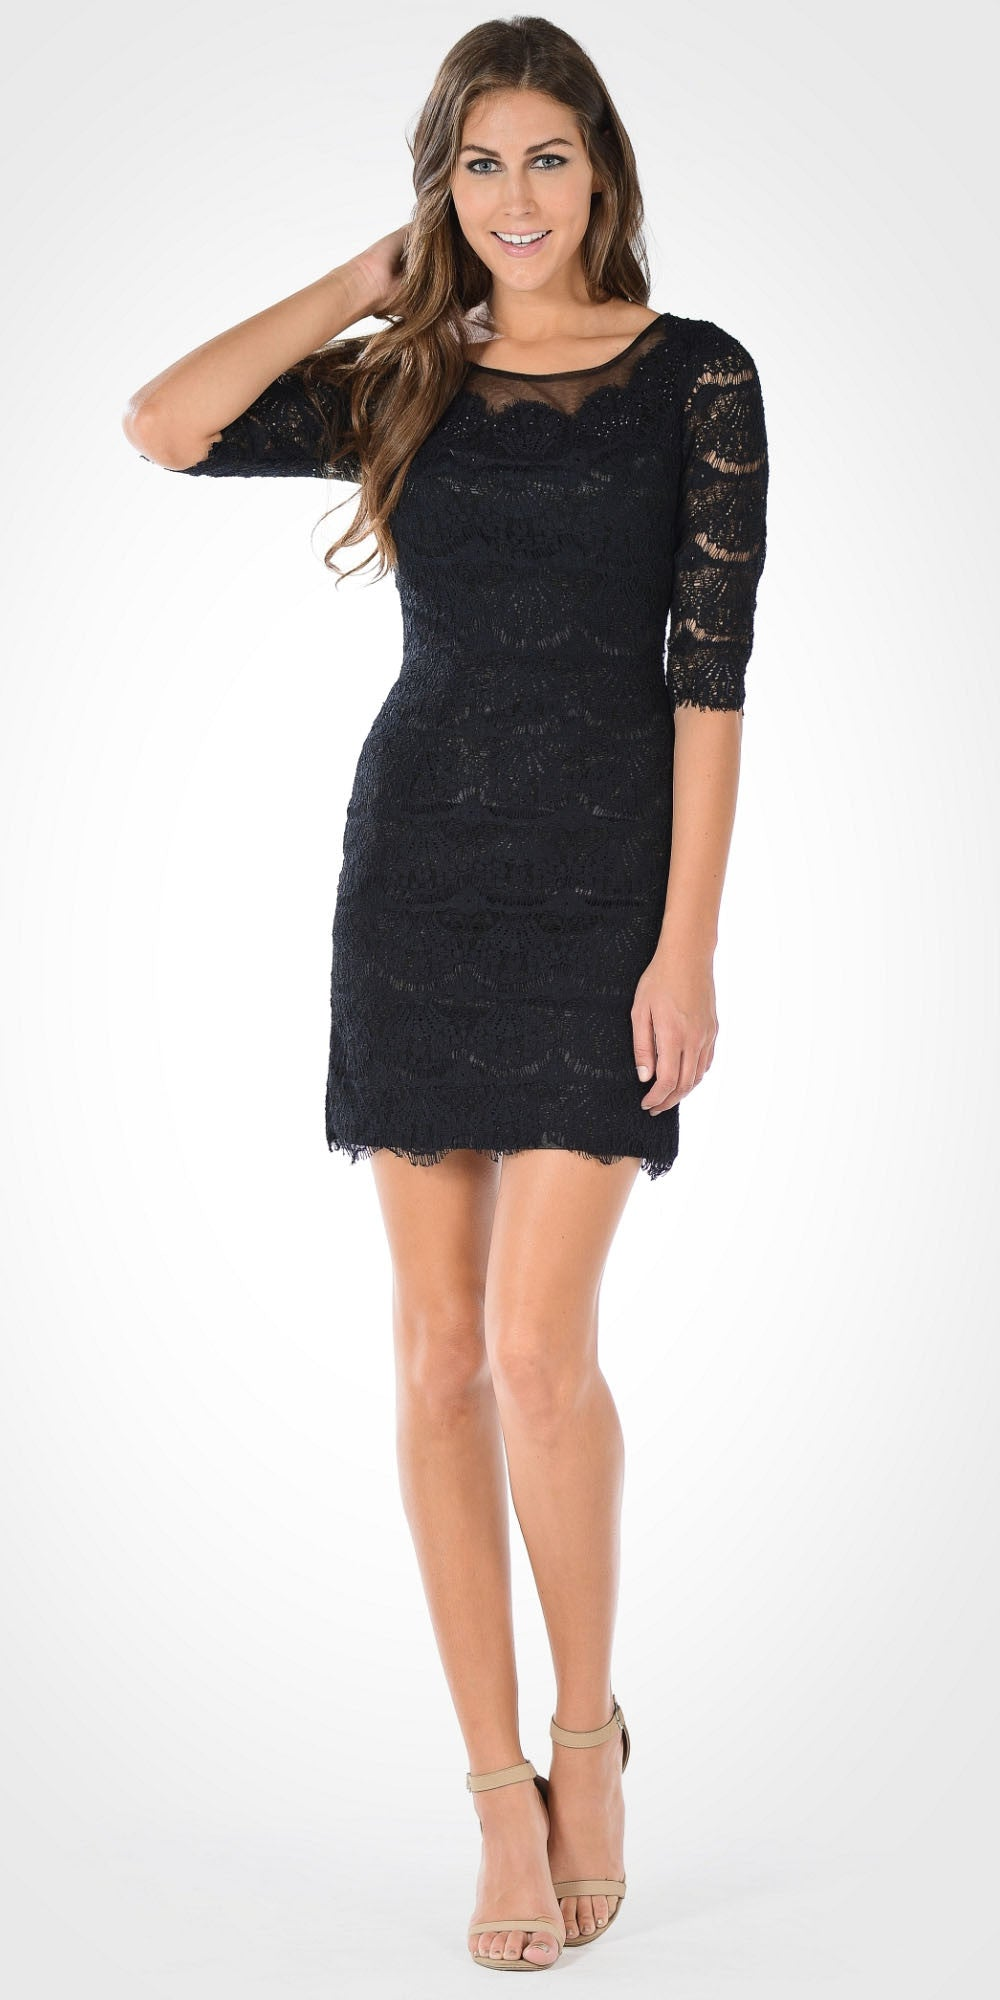 Black Scoop Neck Mid Sleeves Lace Bodycon Party Dress